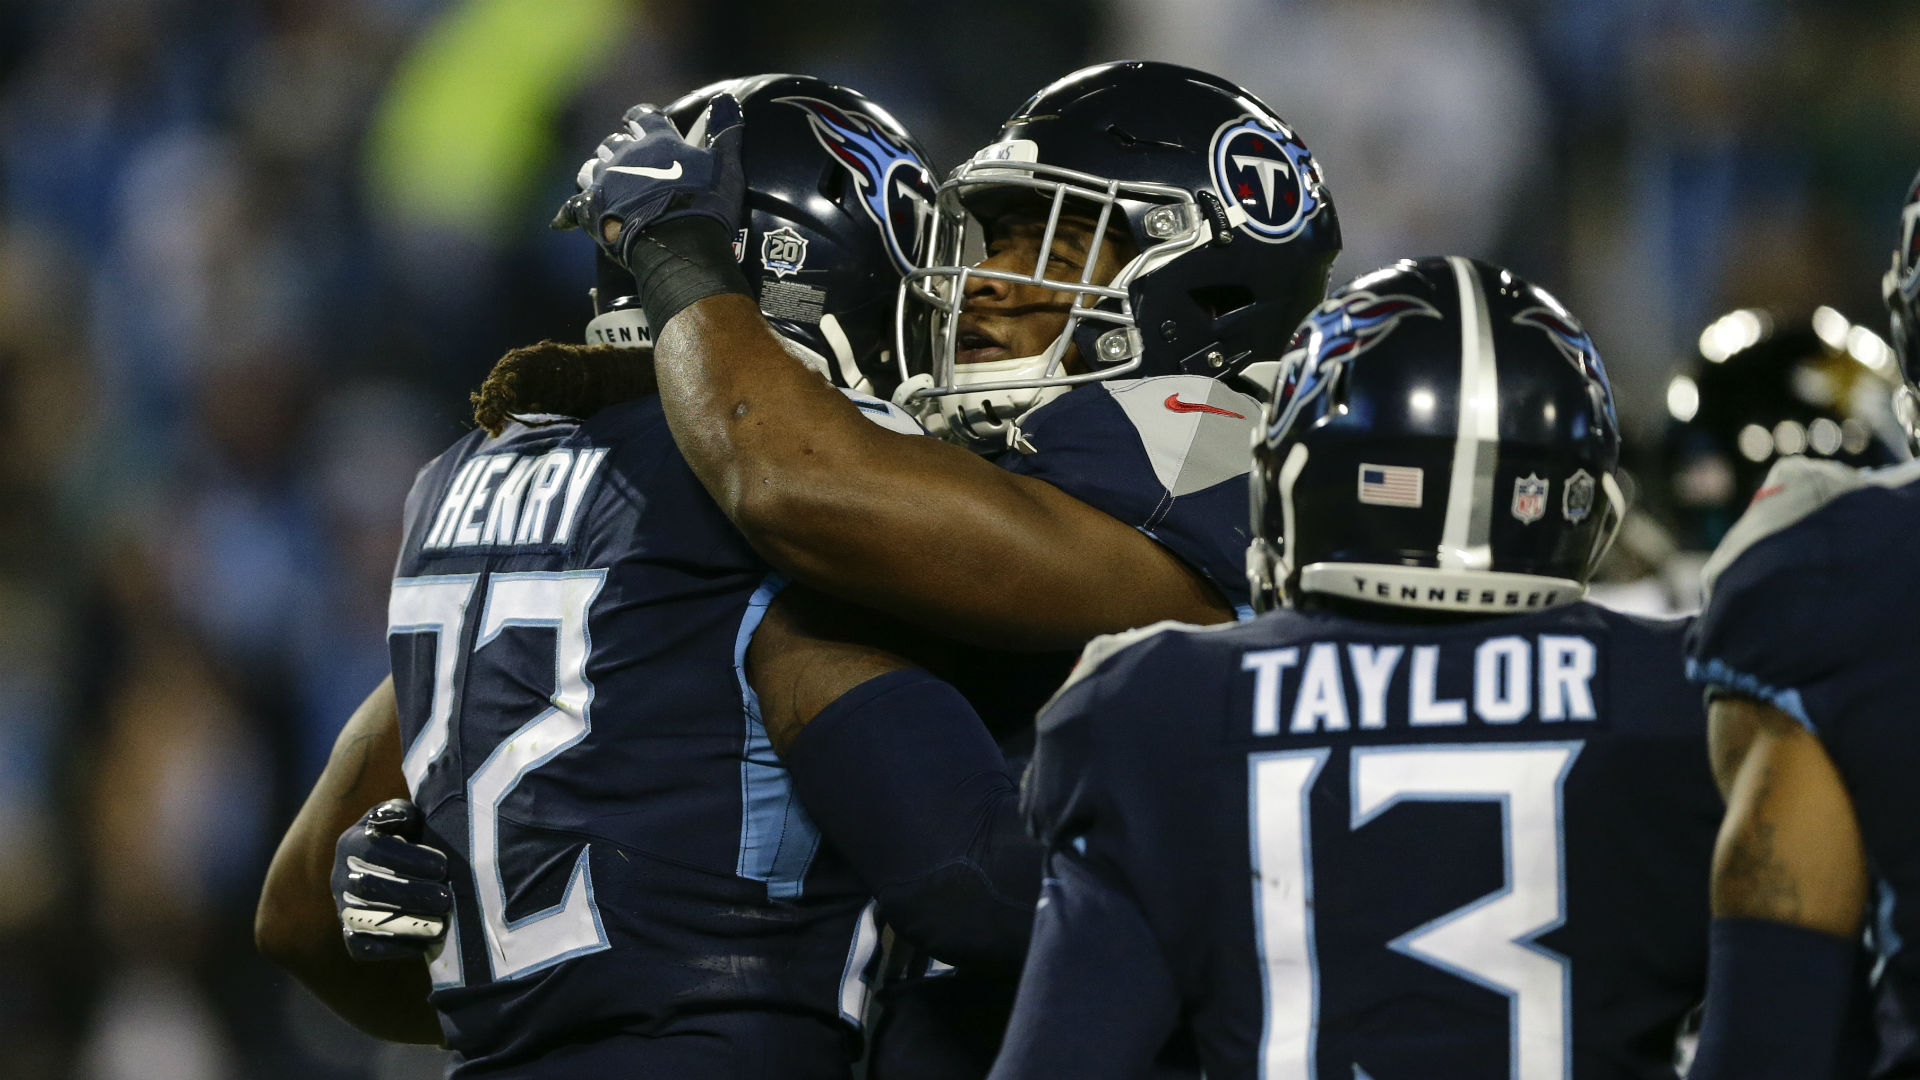 Tennessee Titans running back Derrick Henry tied one record, broke another and missed out on a third on Thursday, but he had no regrets.